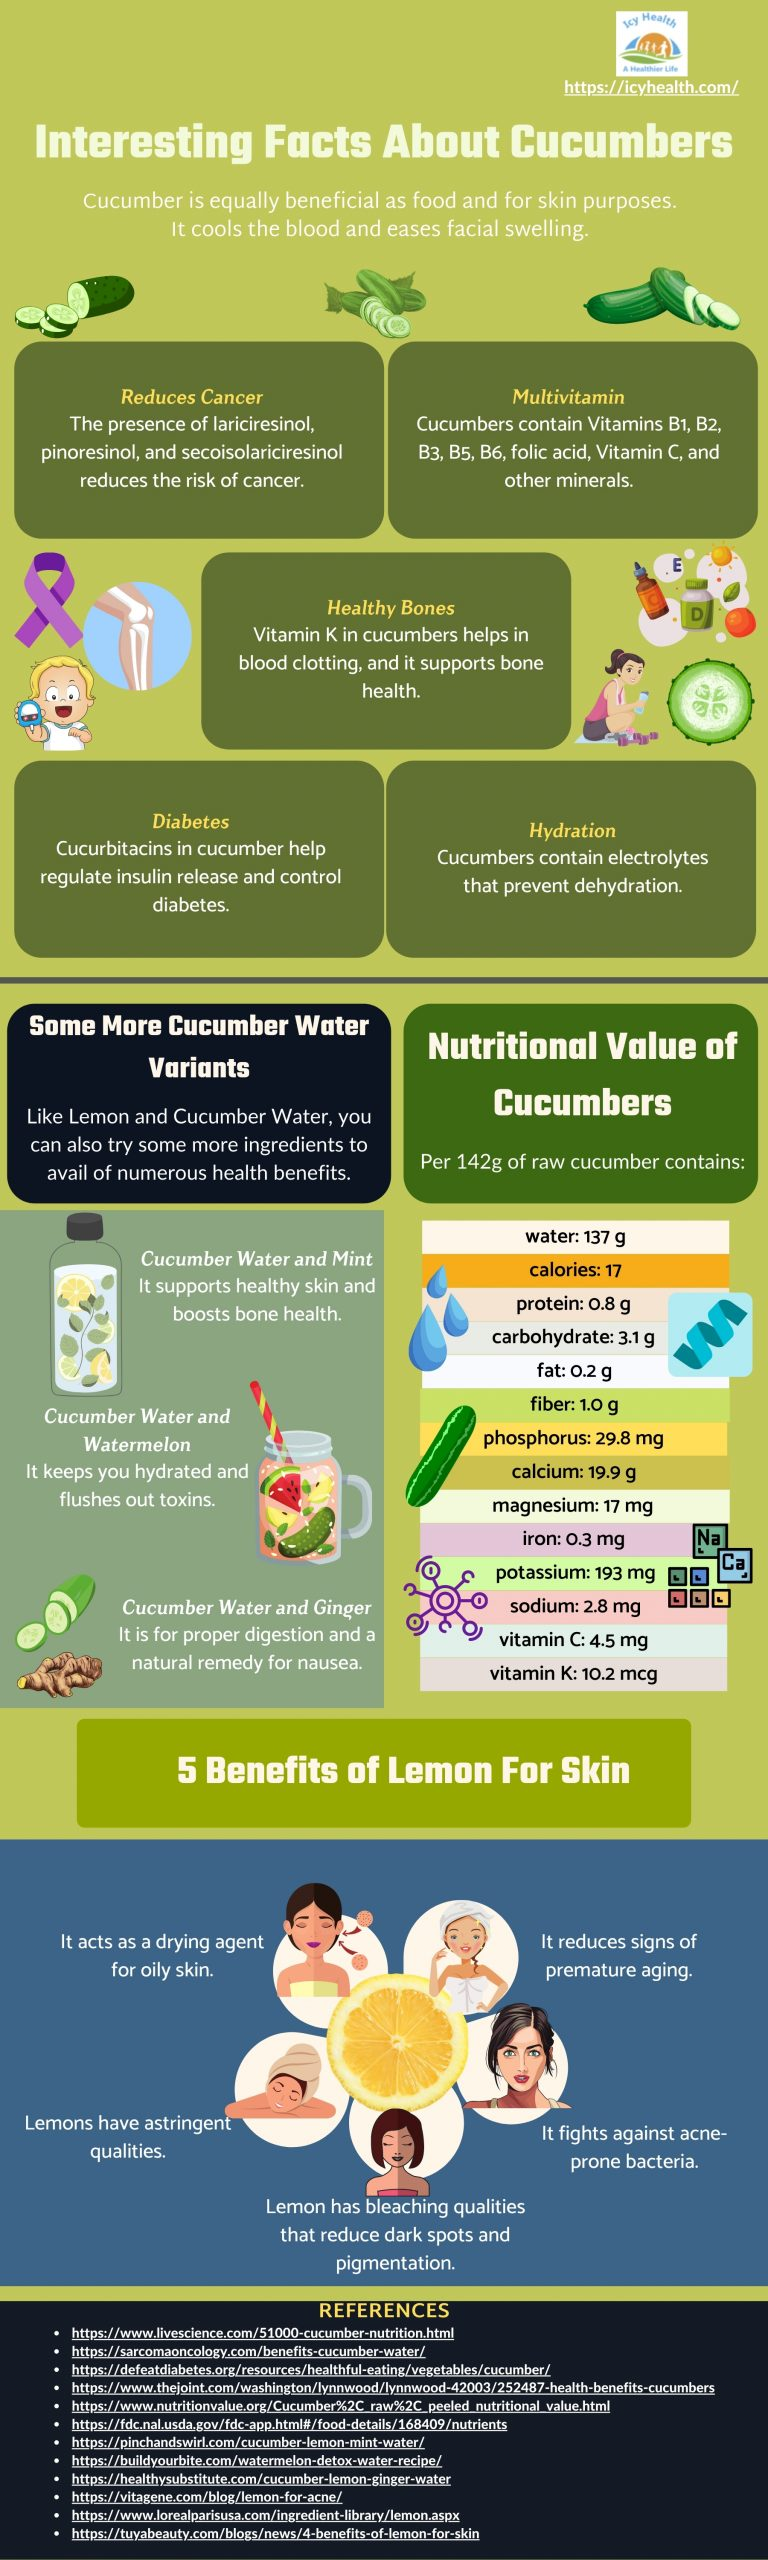 Interesting Facts About Cucumbers